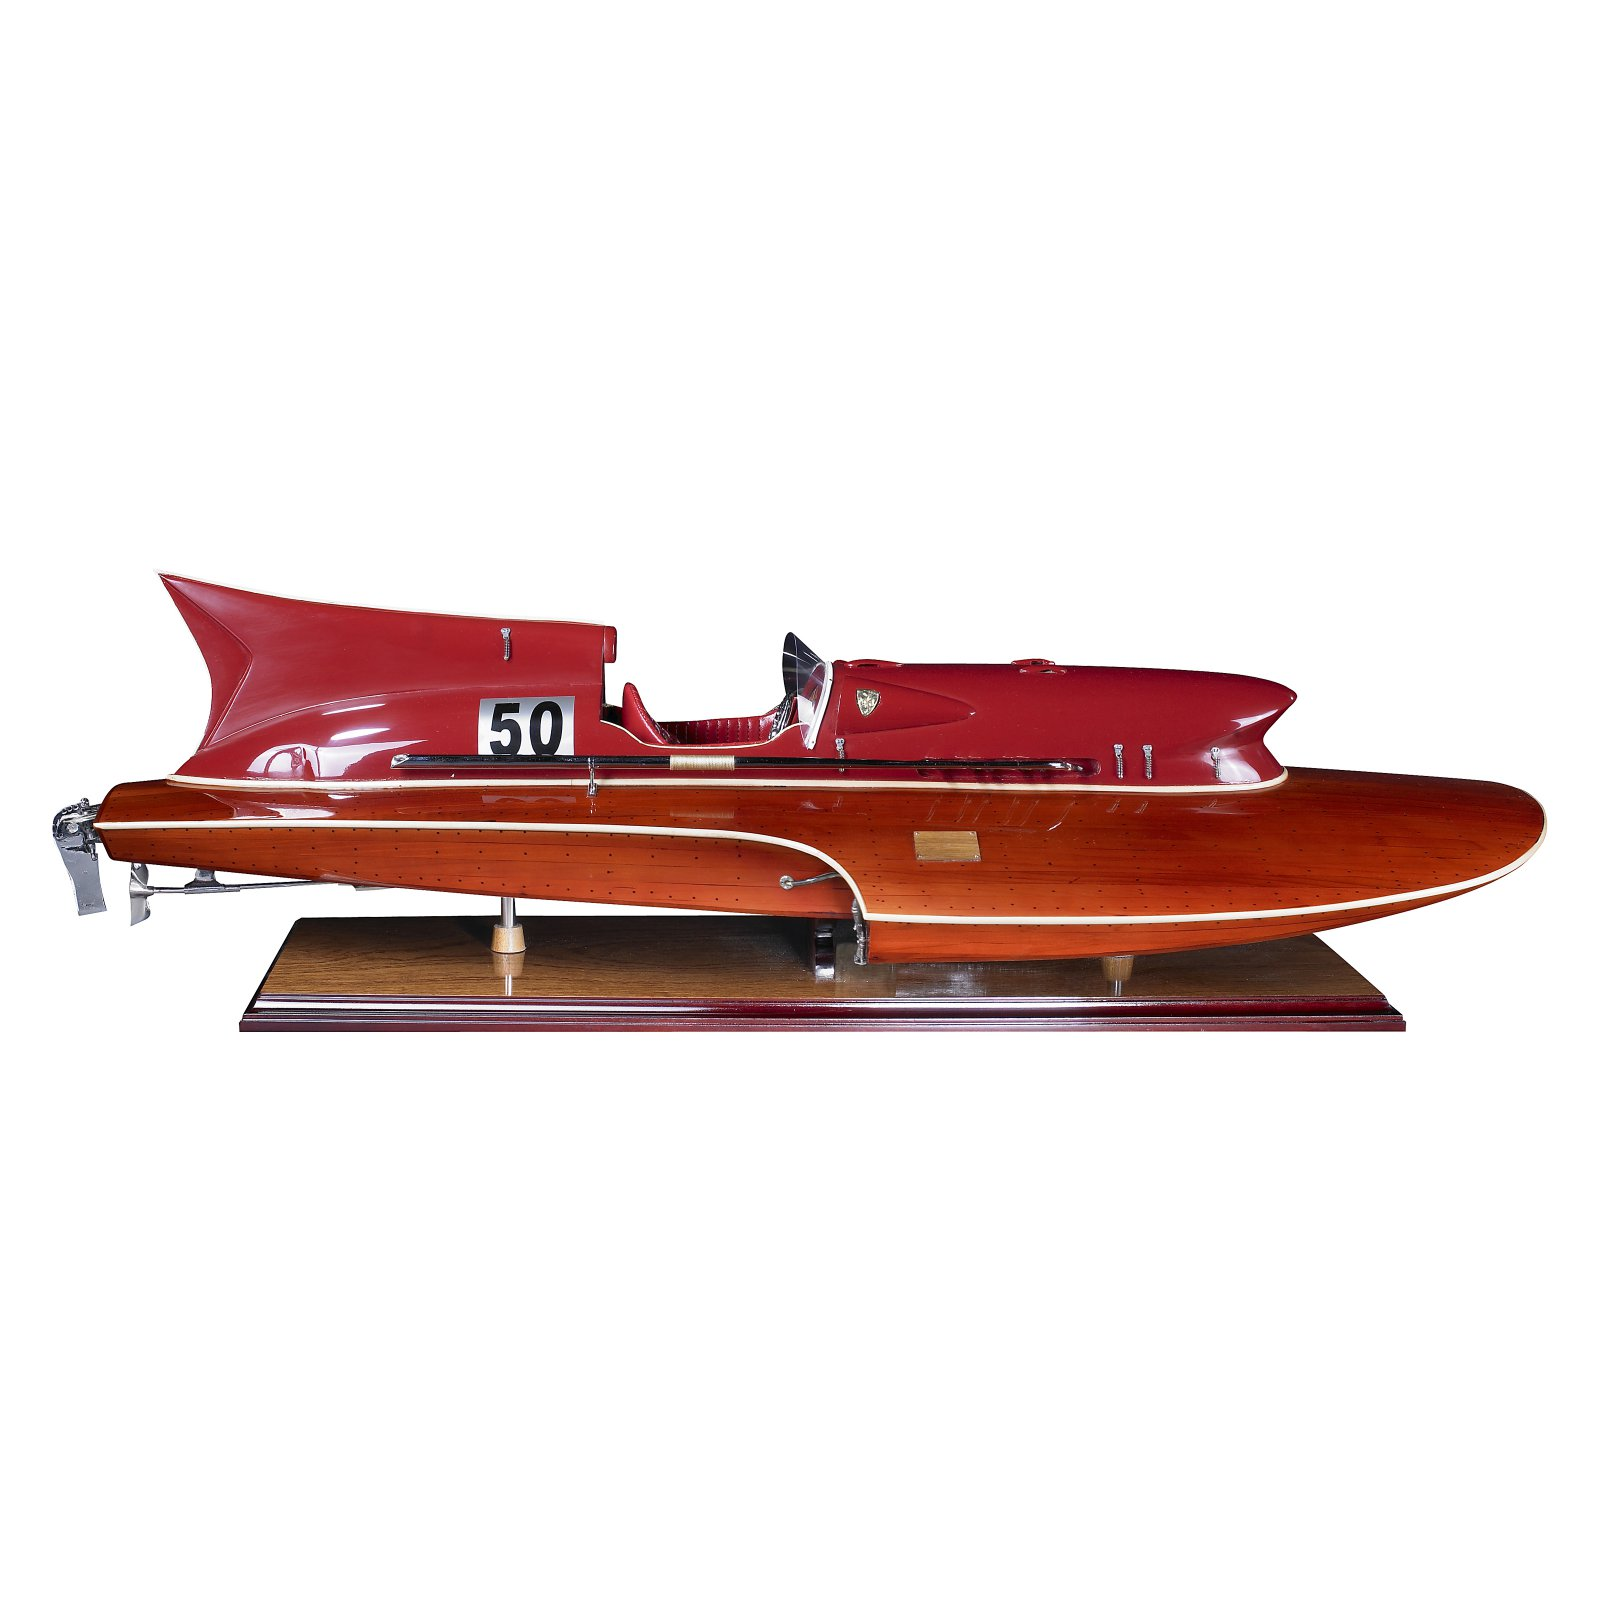 Authentic Models Thunderboat by Authentic Models